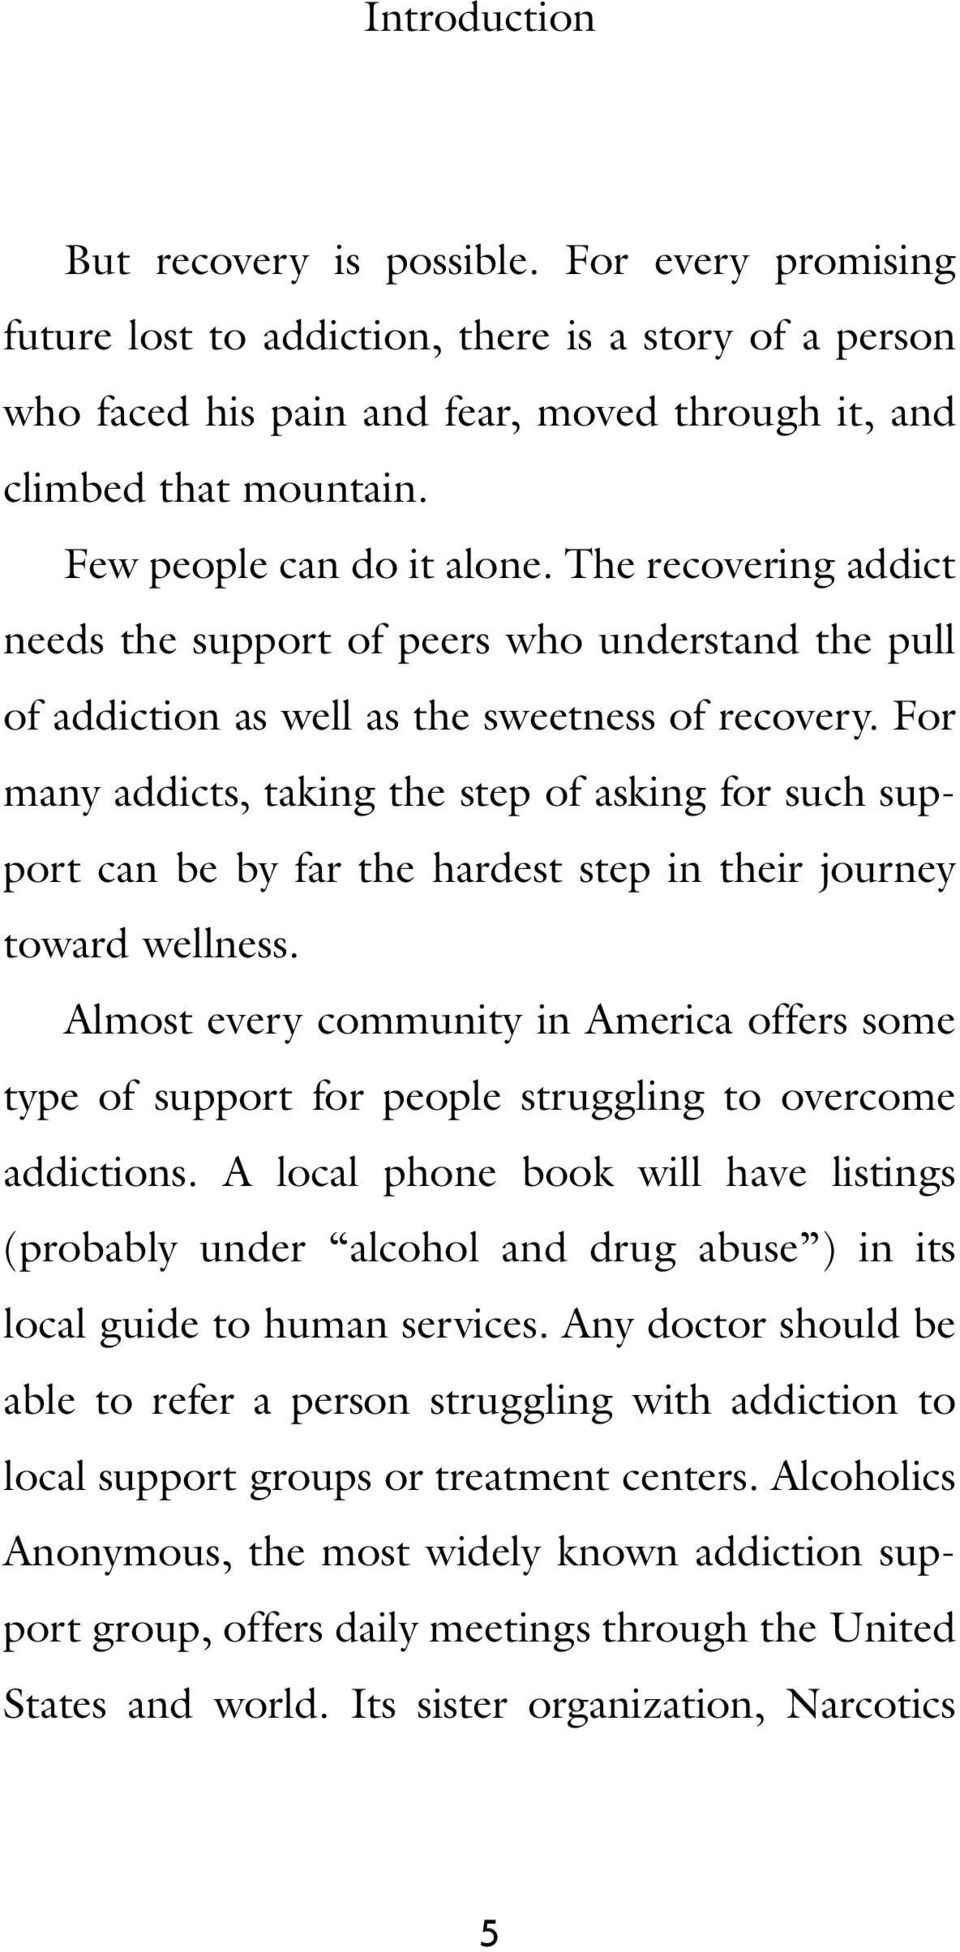 For many addicts, taking the step of asking for such support can be by far the hardest step in their journey toward wellness.